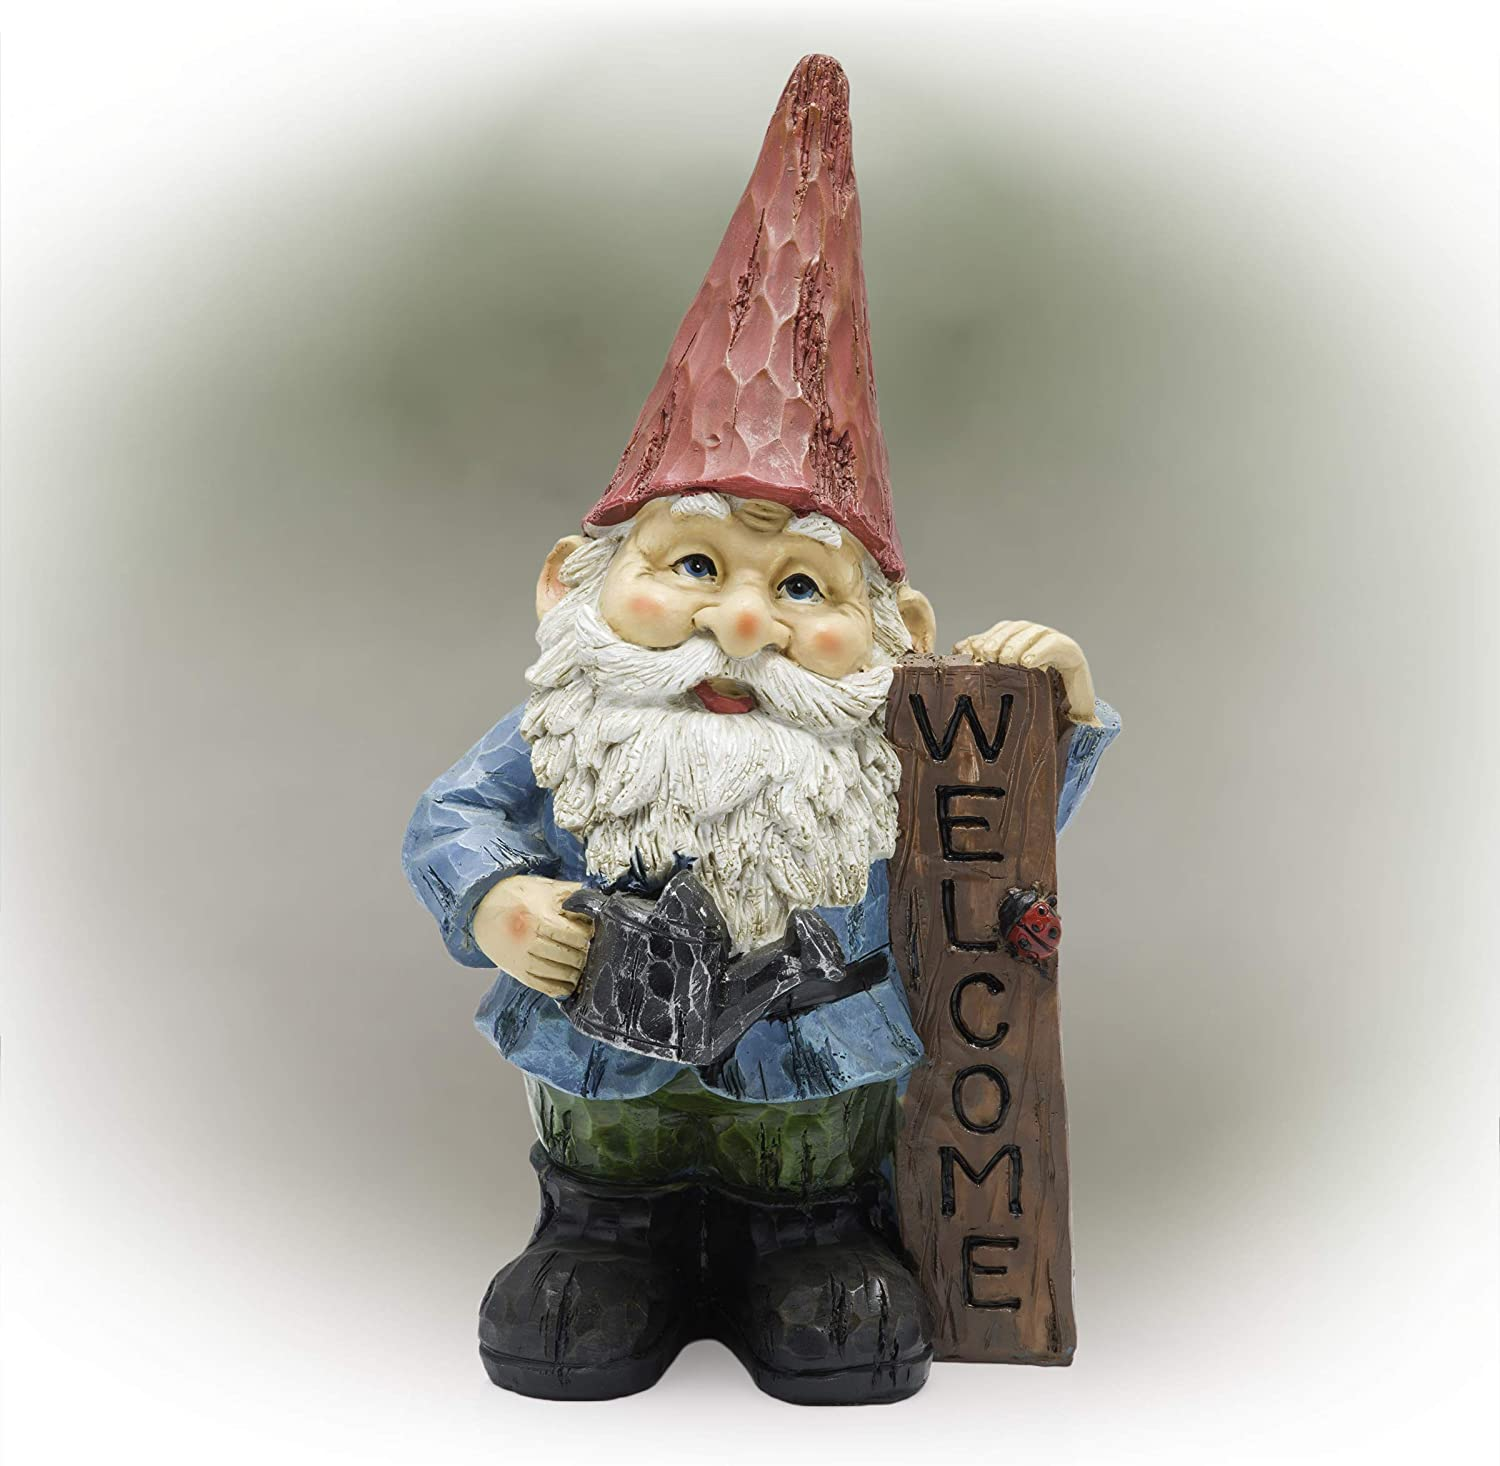 Alpine Corporation WQA1068 Alpine Garden Welcome' Sign Gnome Statue, Multicolor